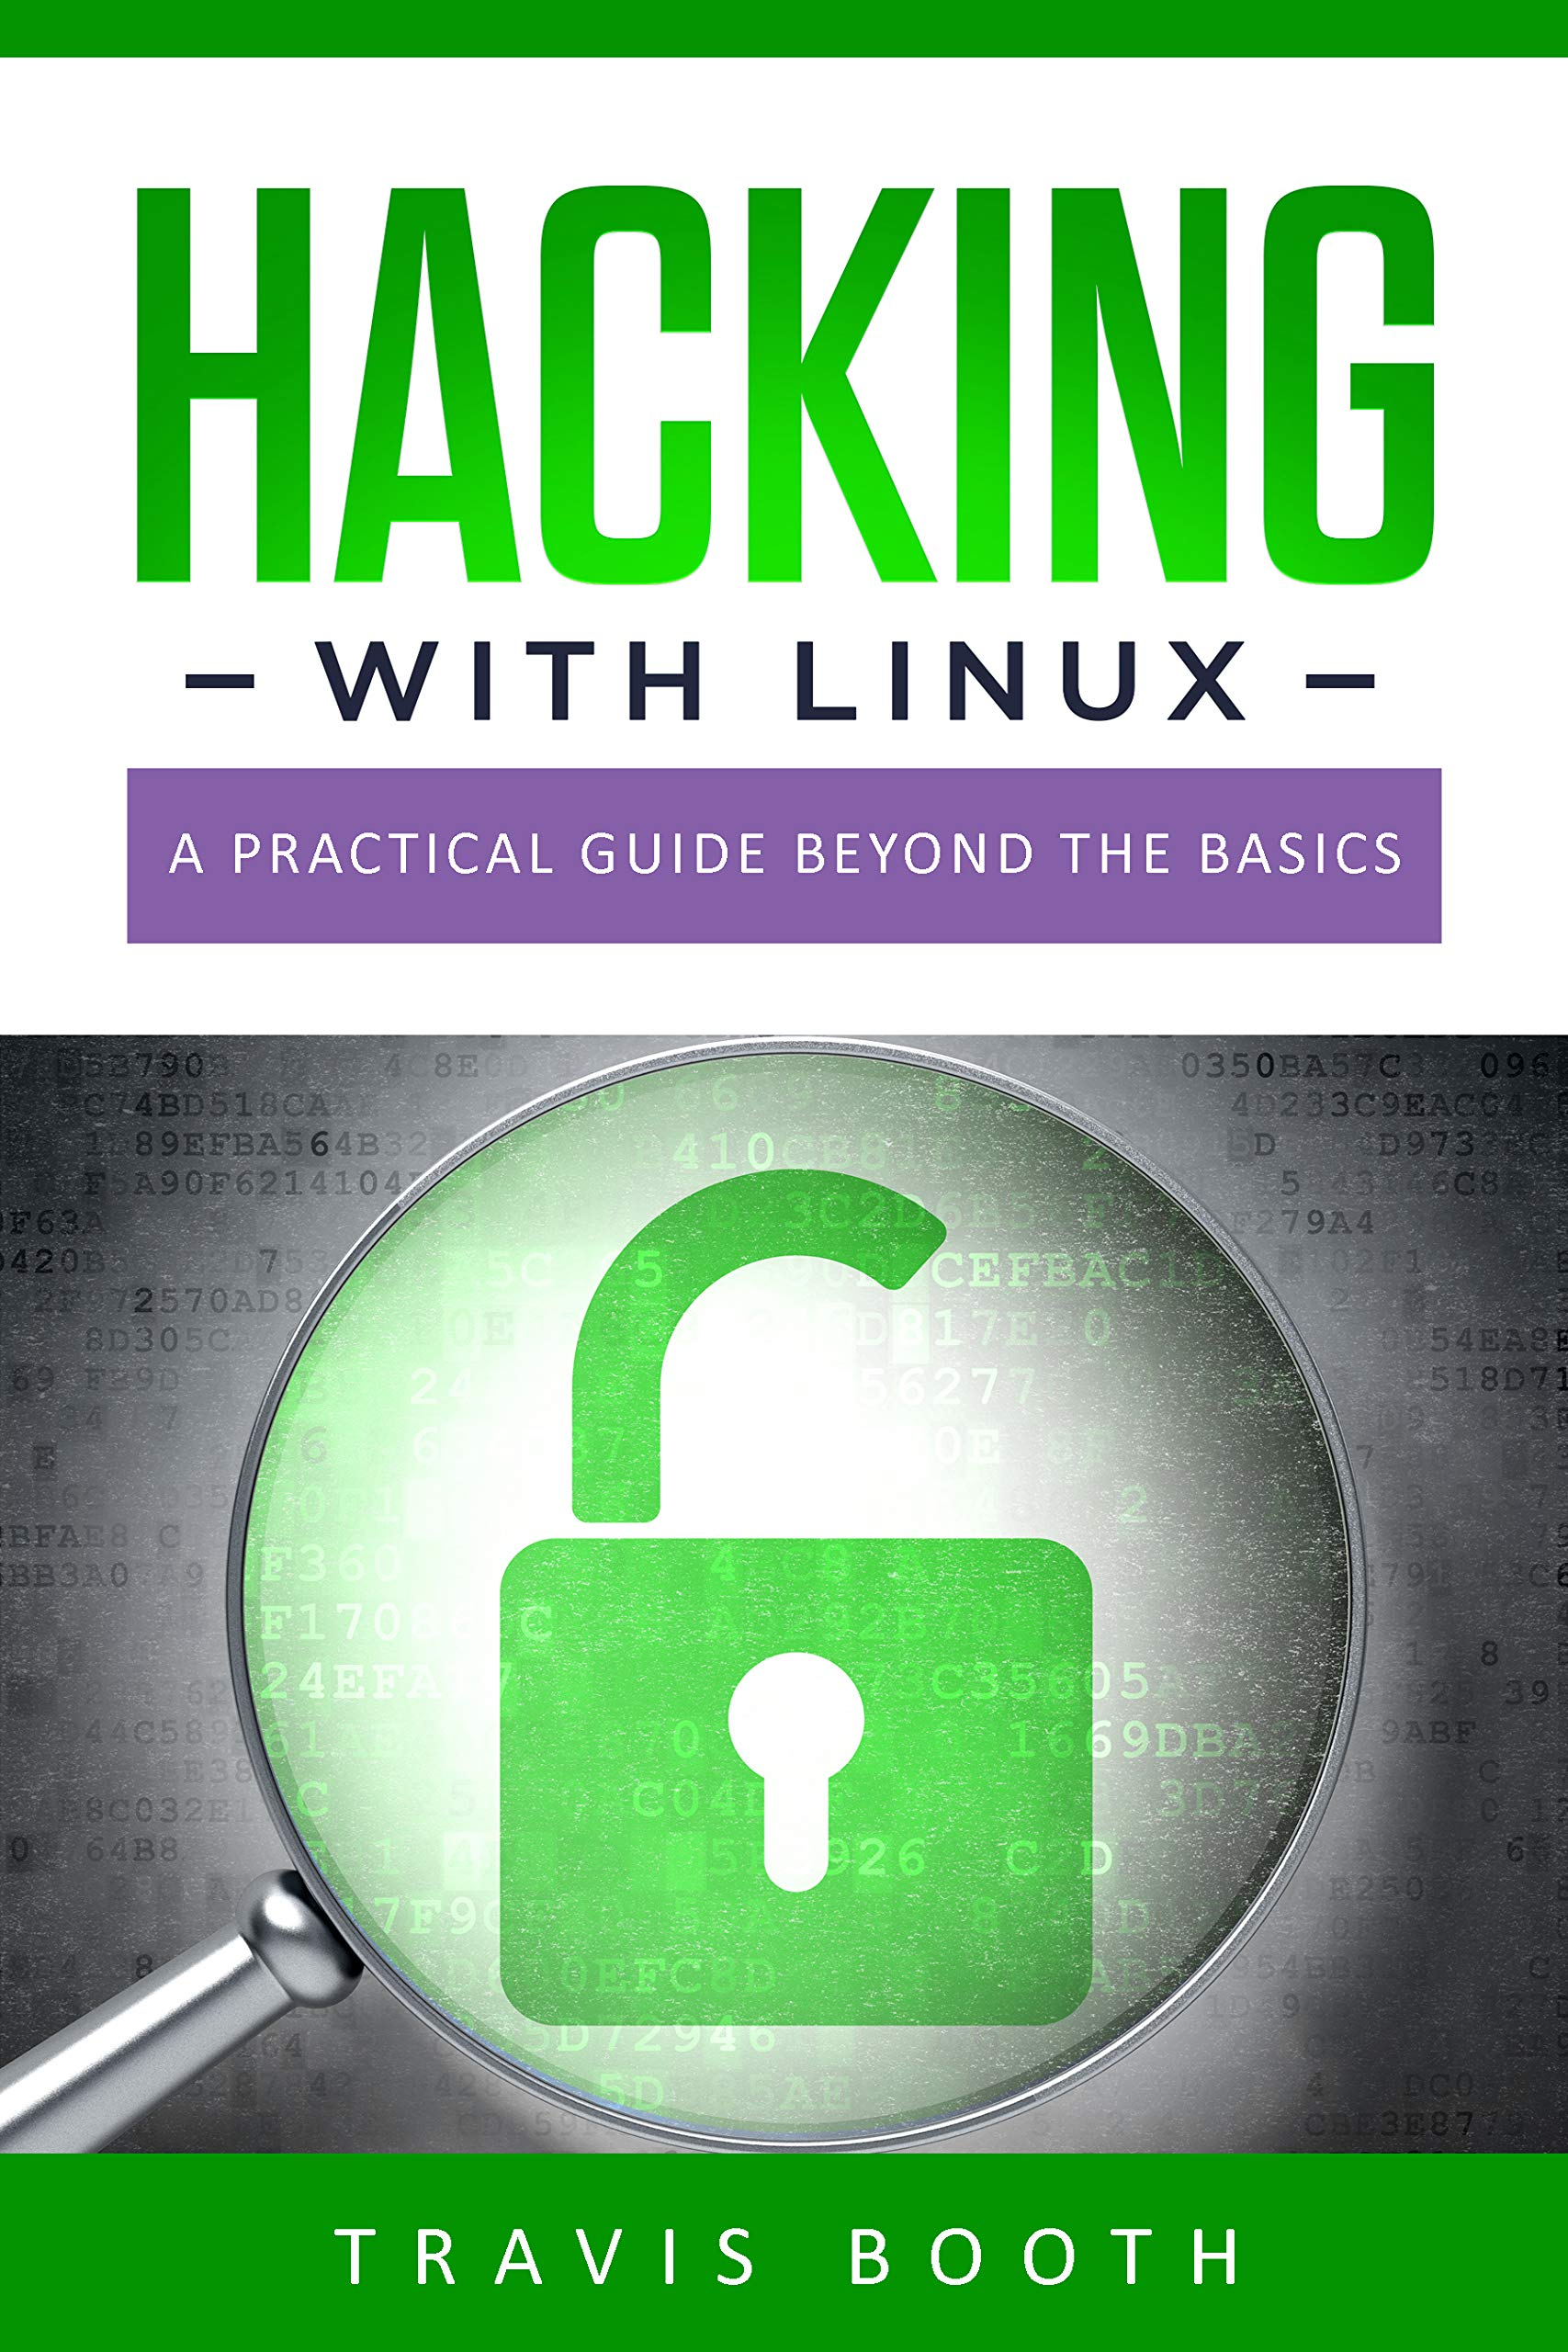 Image OfHacking With Linux: A Practical Guide Beyond The Basics (English Edition)